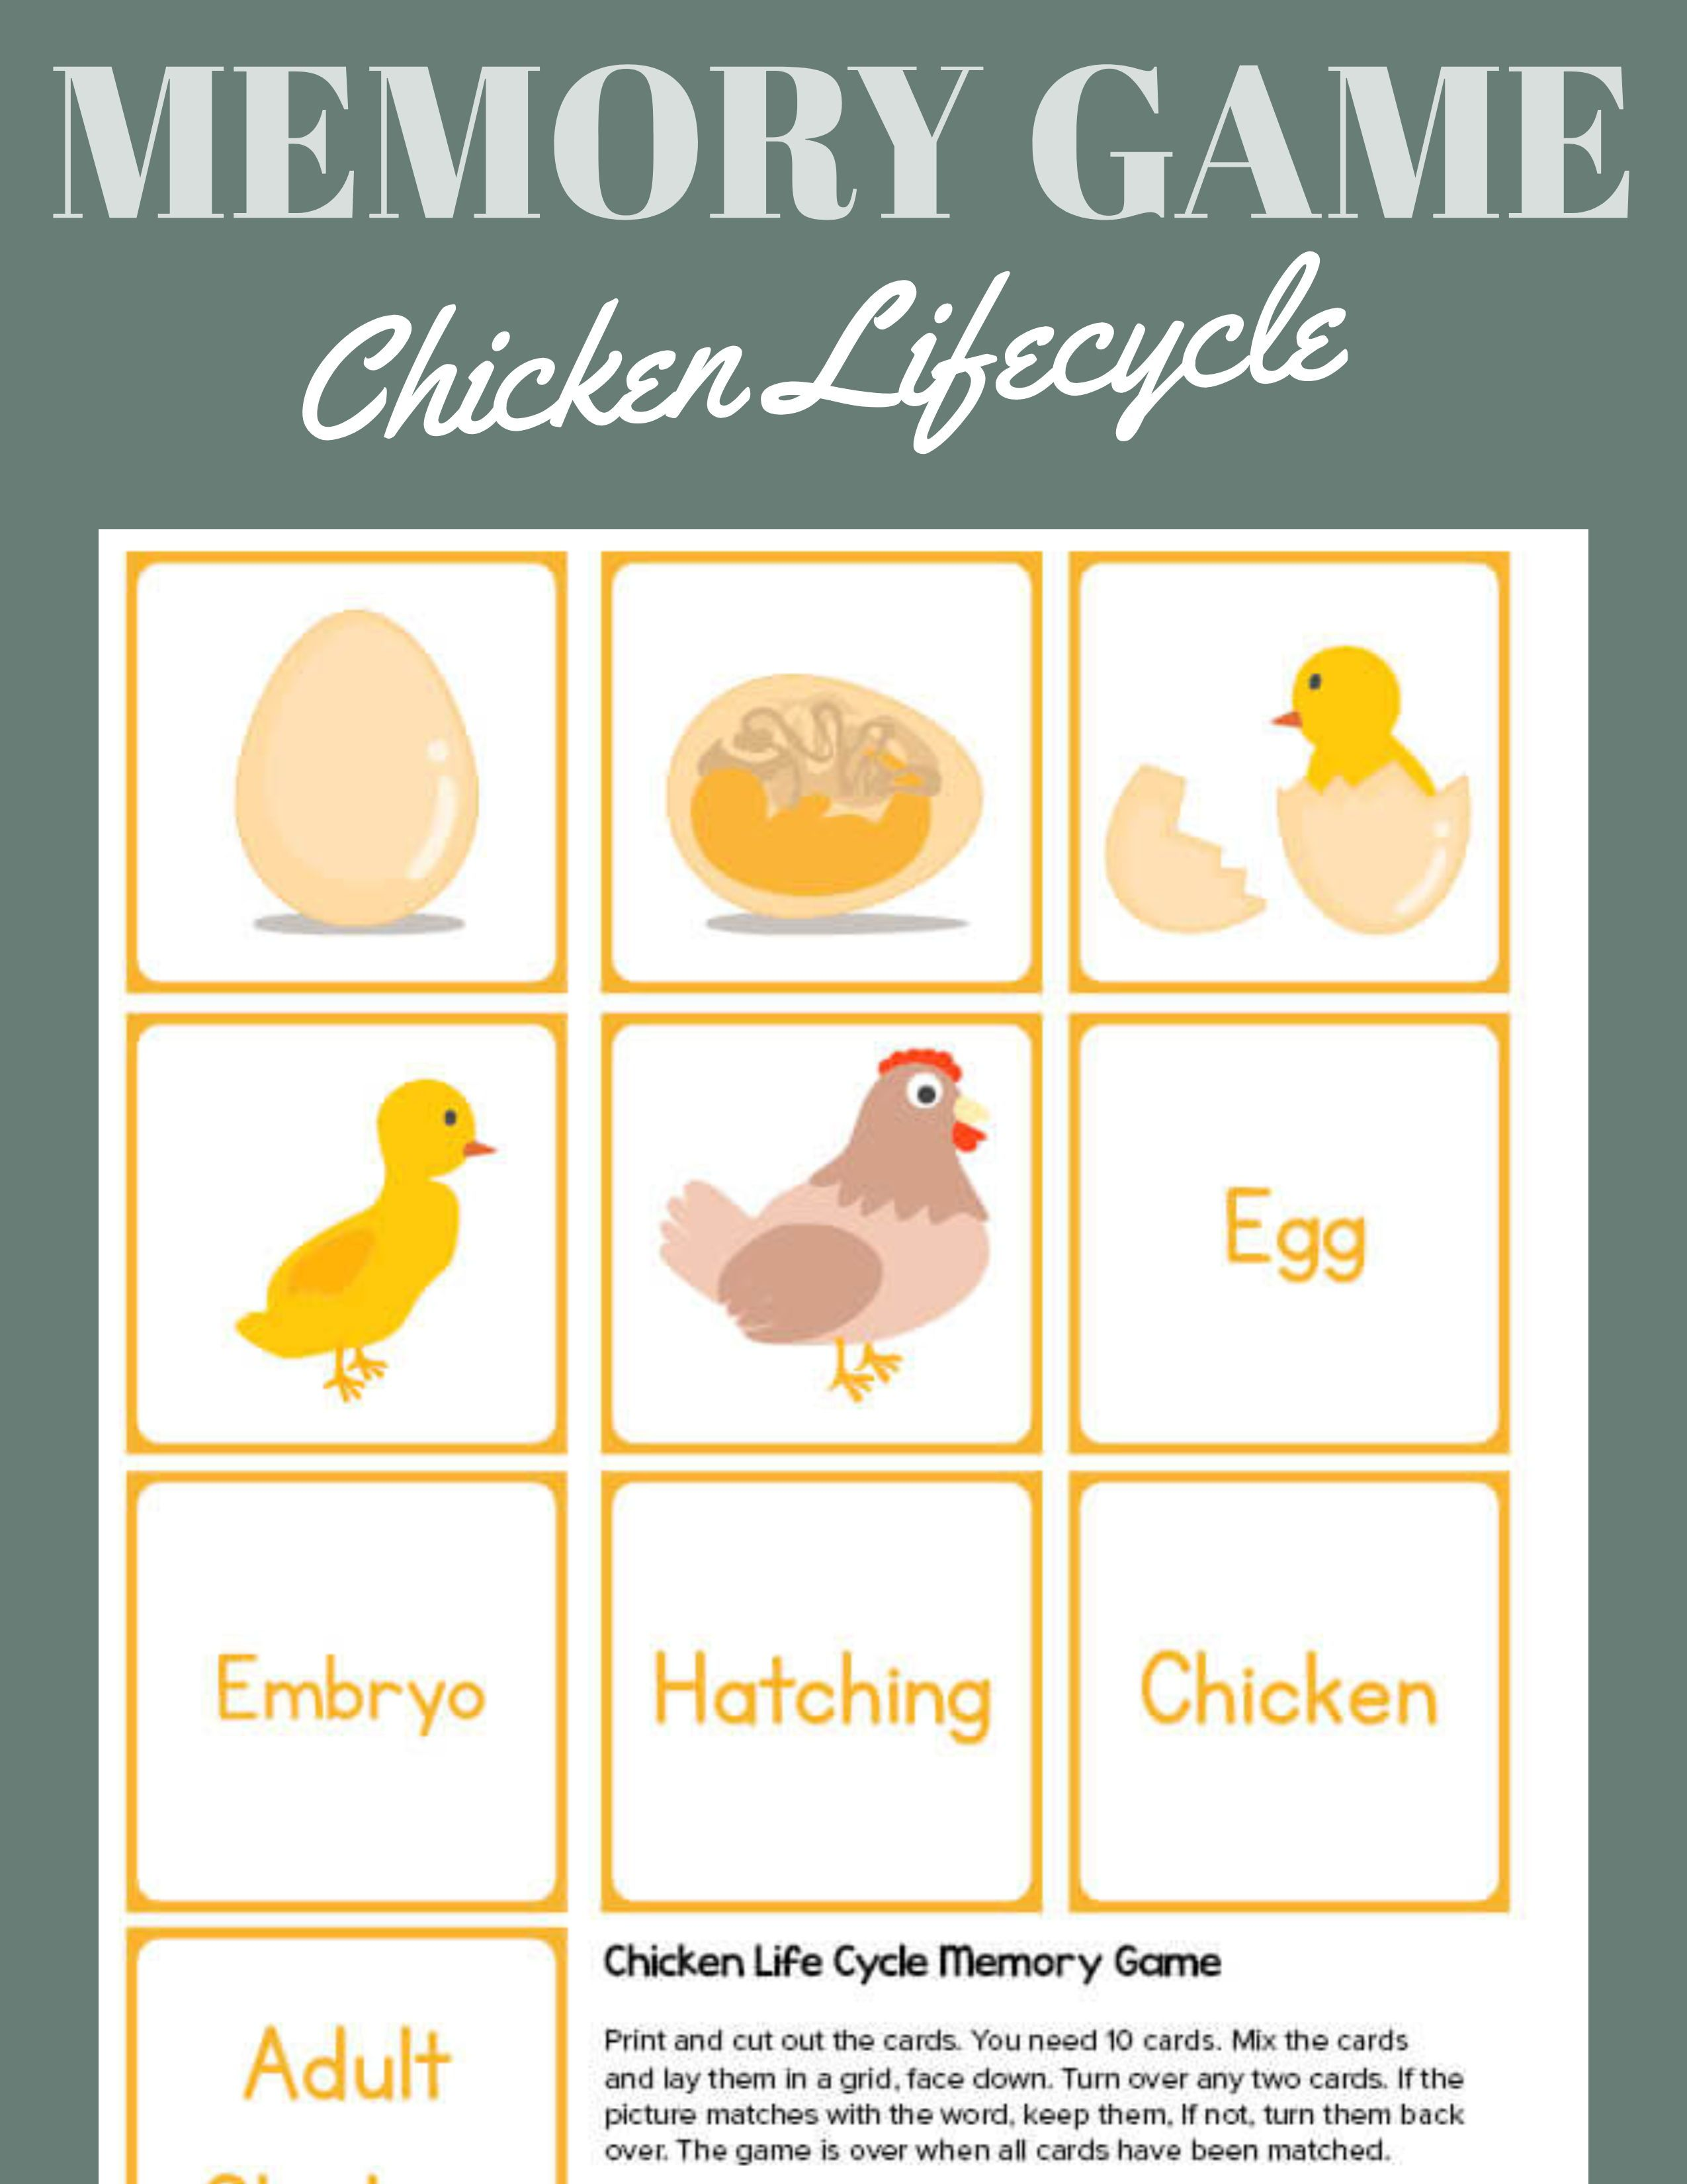 The Chicken Life Cycle Memory Game